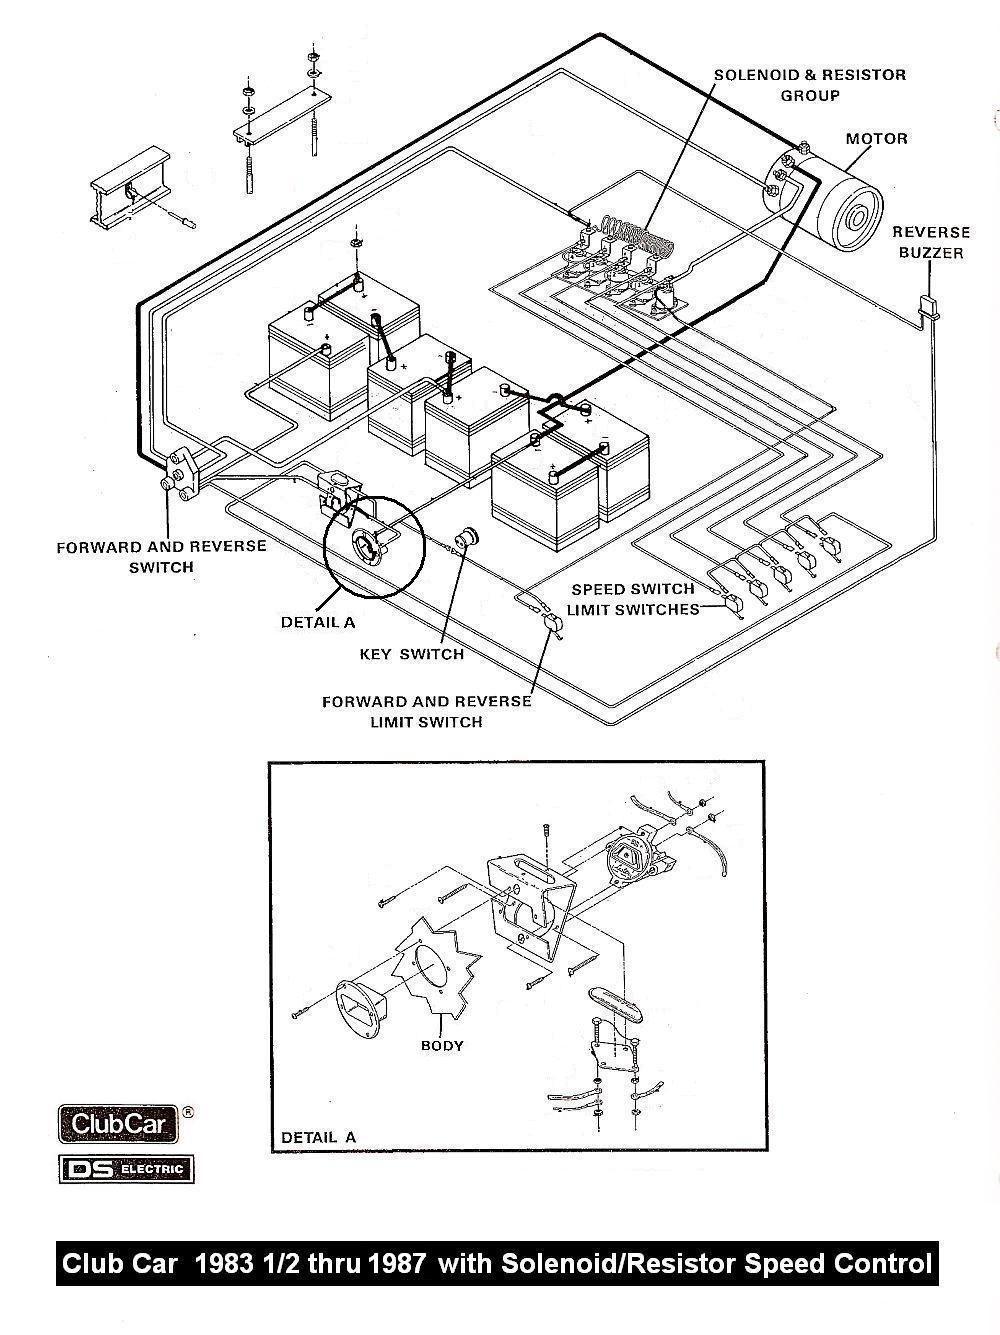 0e8d045370be7682b159825224221faa vintagegolfcartparts com *freezer & crock pot* pinterest club car golf cart 36 volt battery wiring diagram at couponss.co